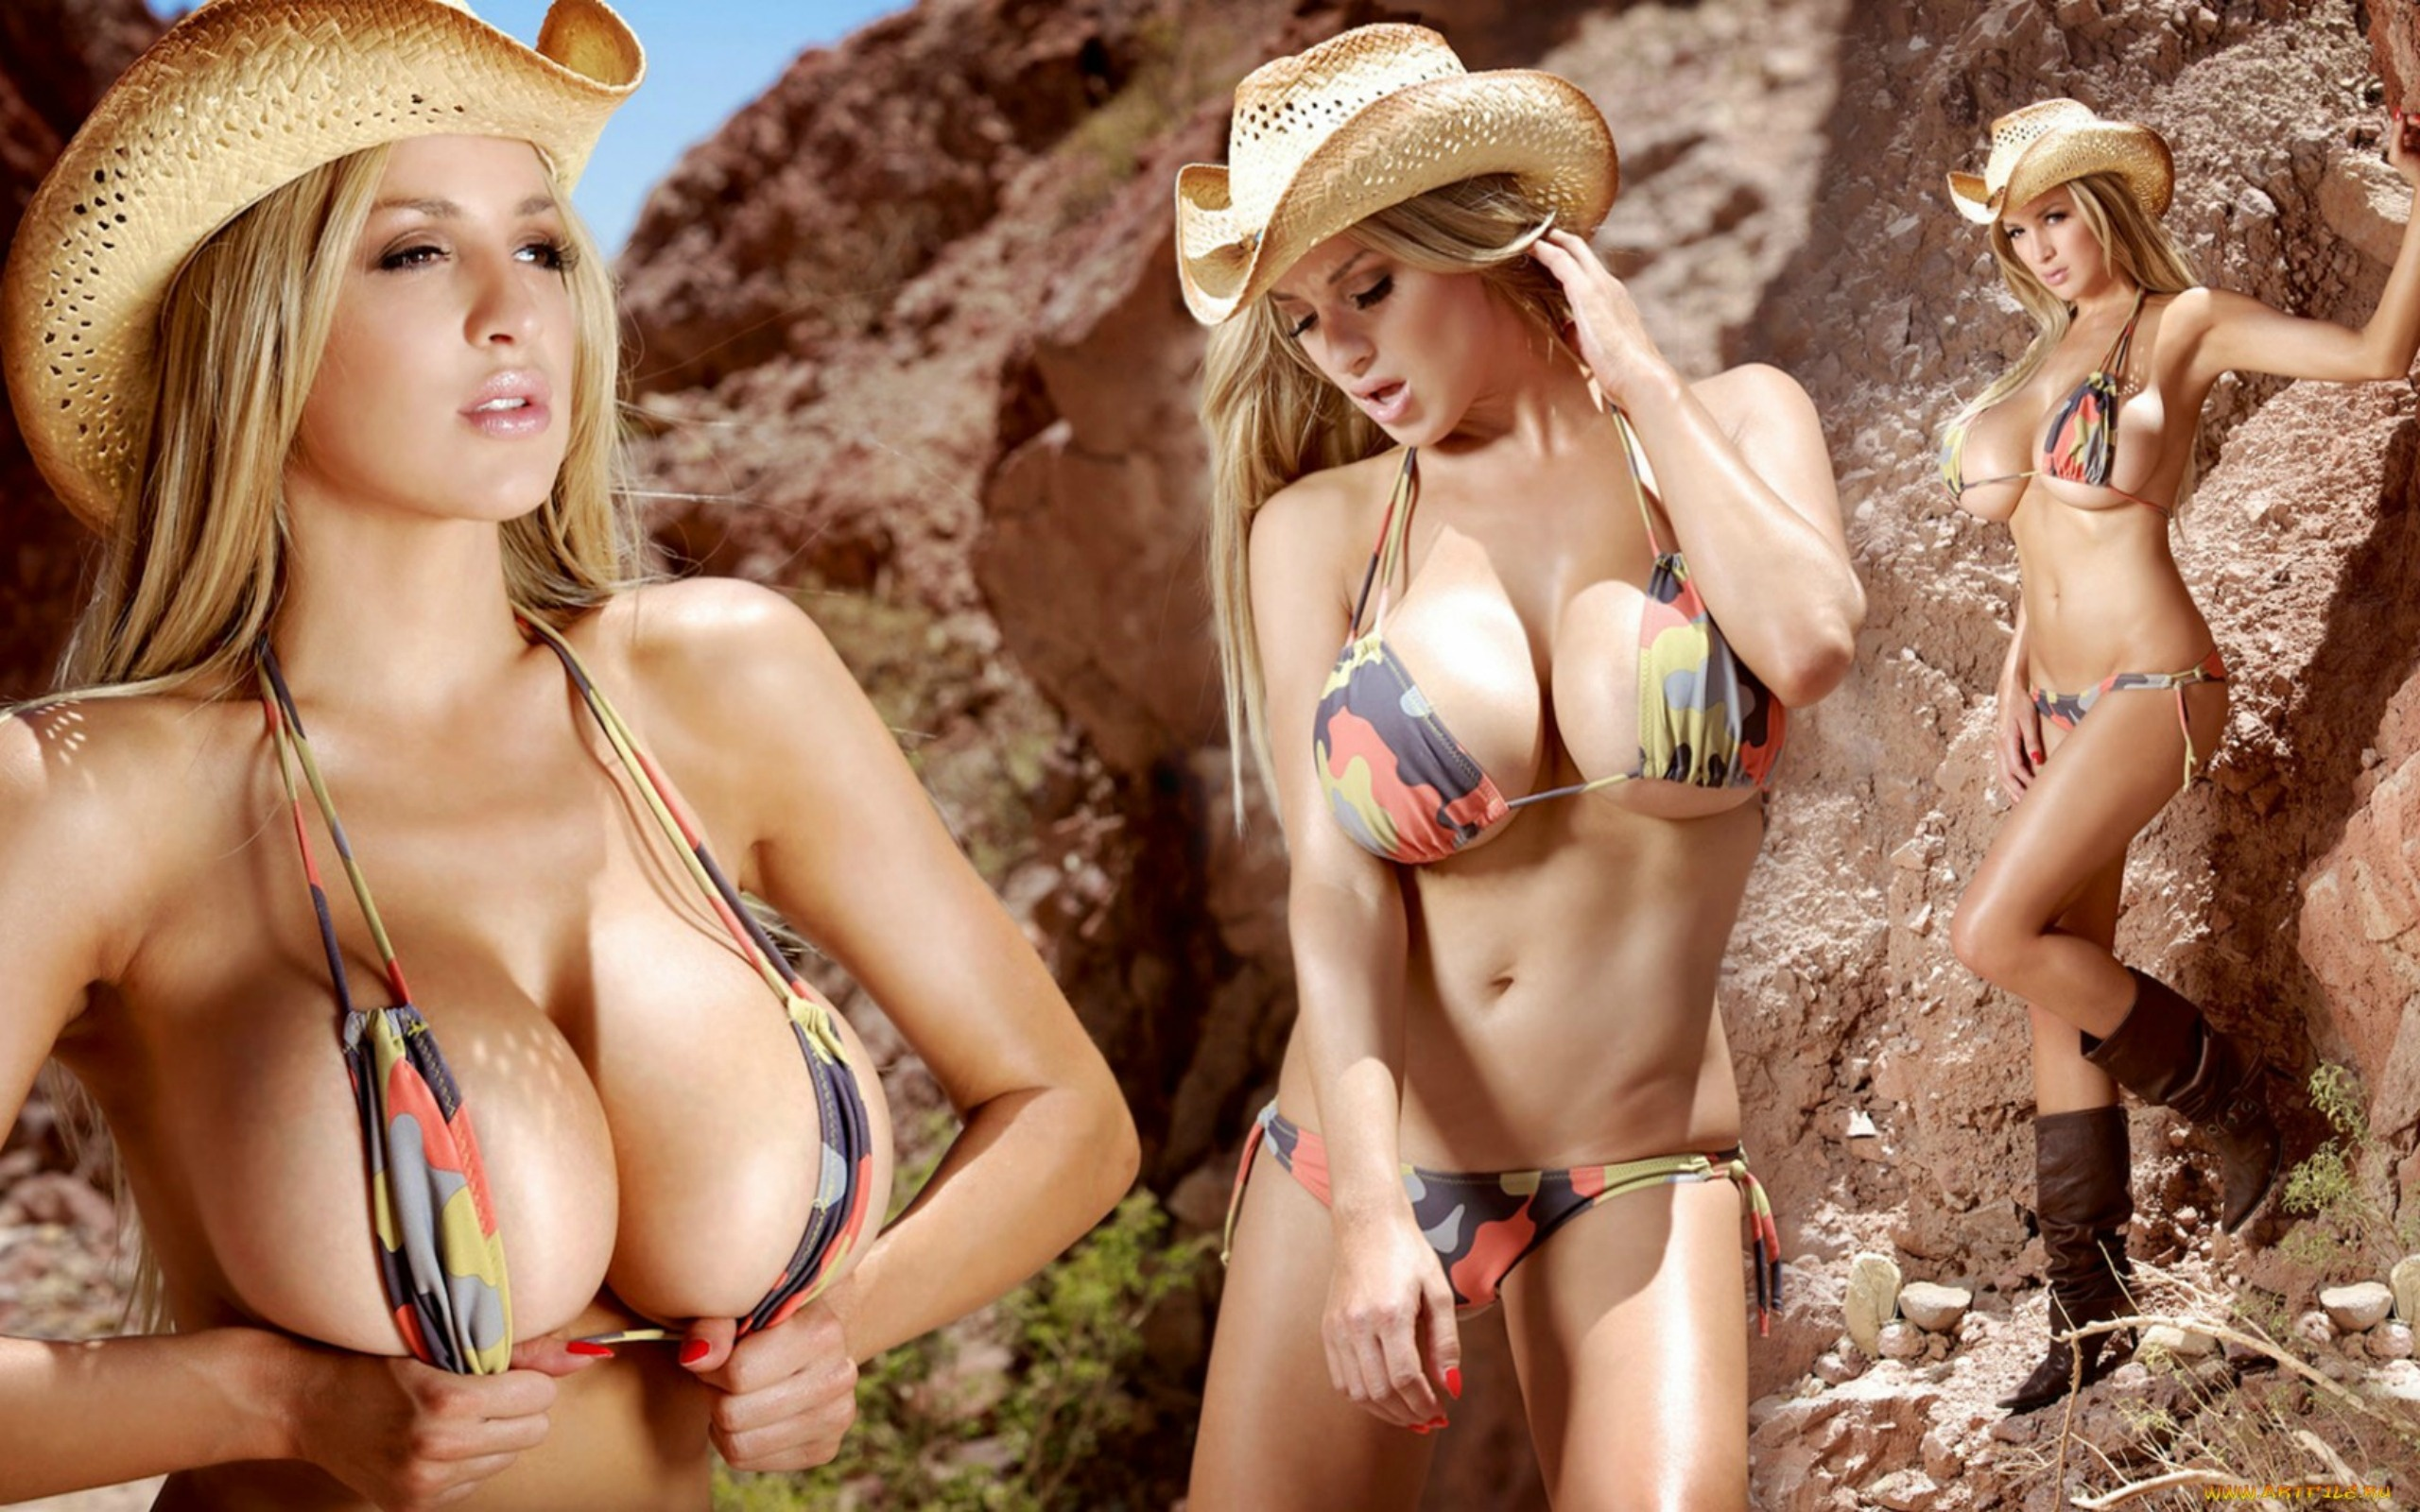 Loveable blonde babe uncovering her jaw-dropping tits outdoor № 780159 без смс